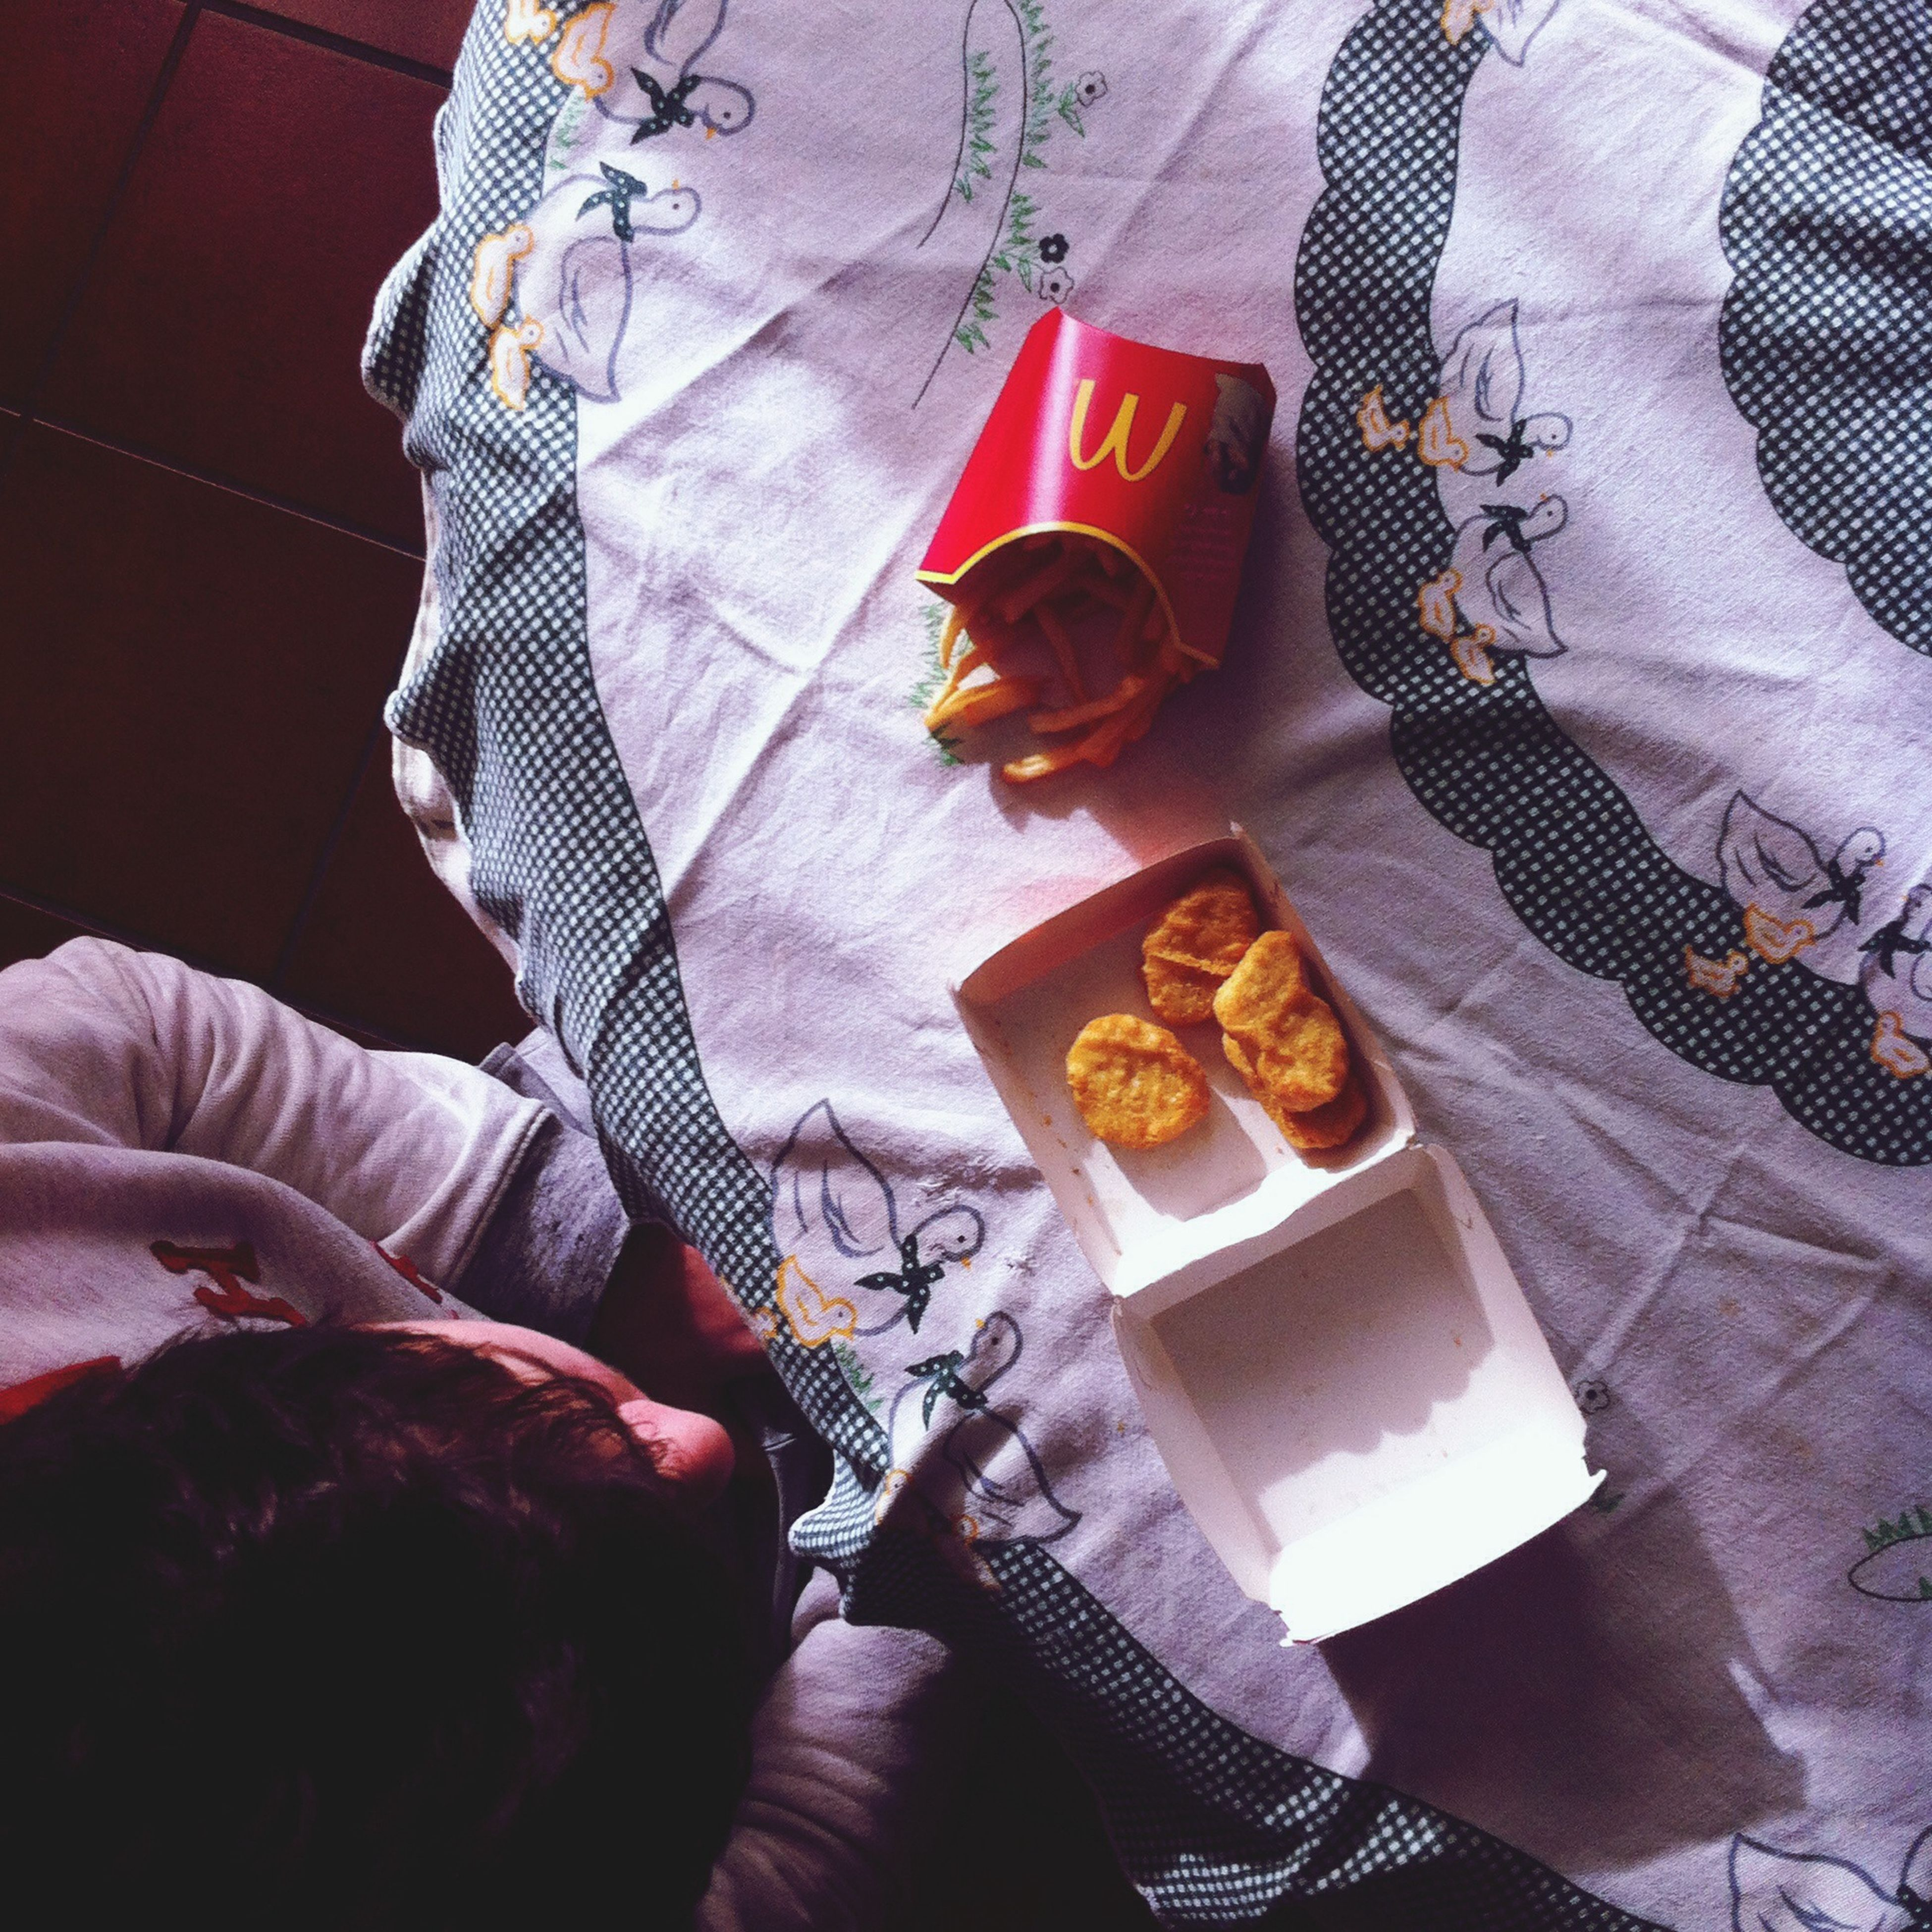 indoors, high angle view, food and drink, table, still life, food, paper, fabric, close-up, textile, red, day, bed, men, lifestyles, communication, freshness